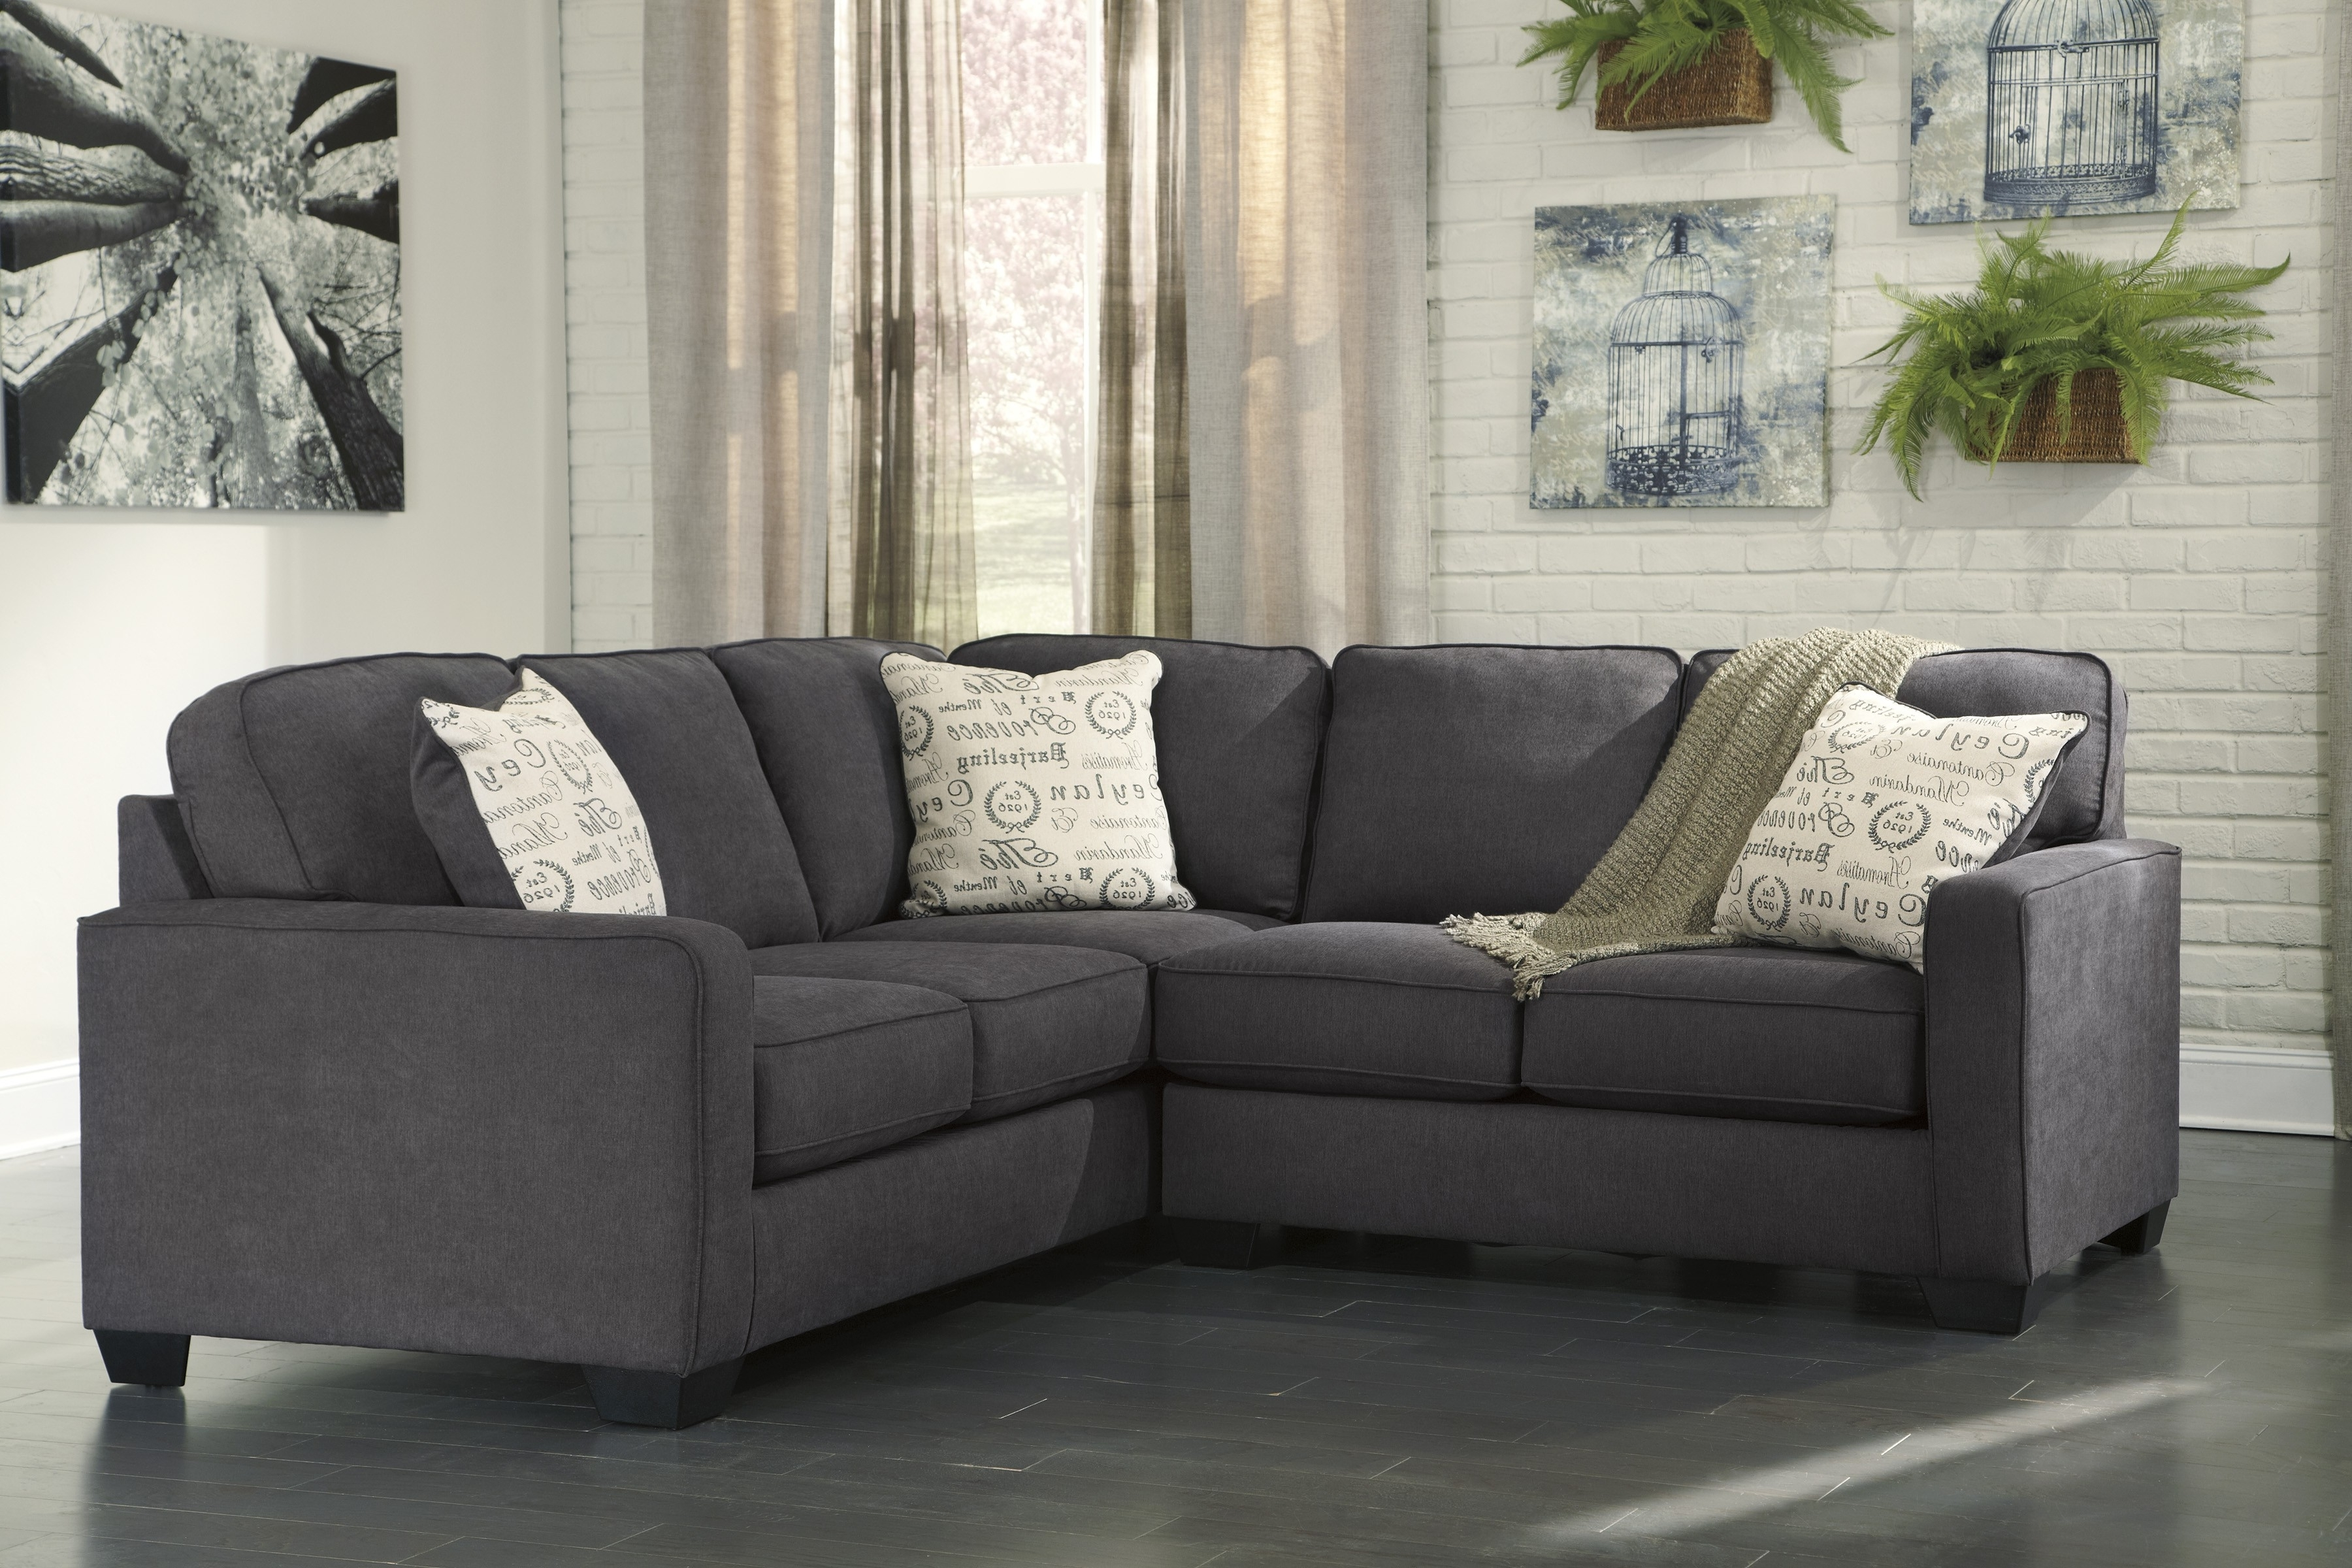 Fashionable Gray Leather Sofa Ashley Furniture Cheap Sectional Sofas Grey Inside 2 Seat Sectional Sofas (View 11 of 15)